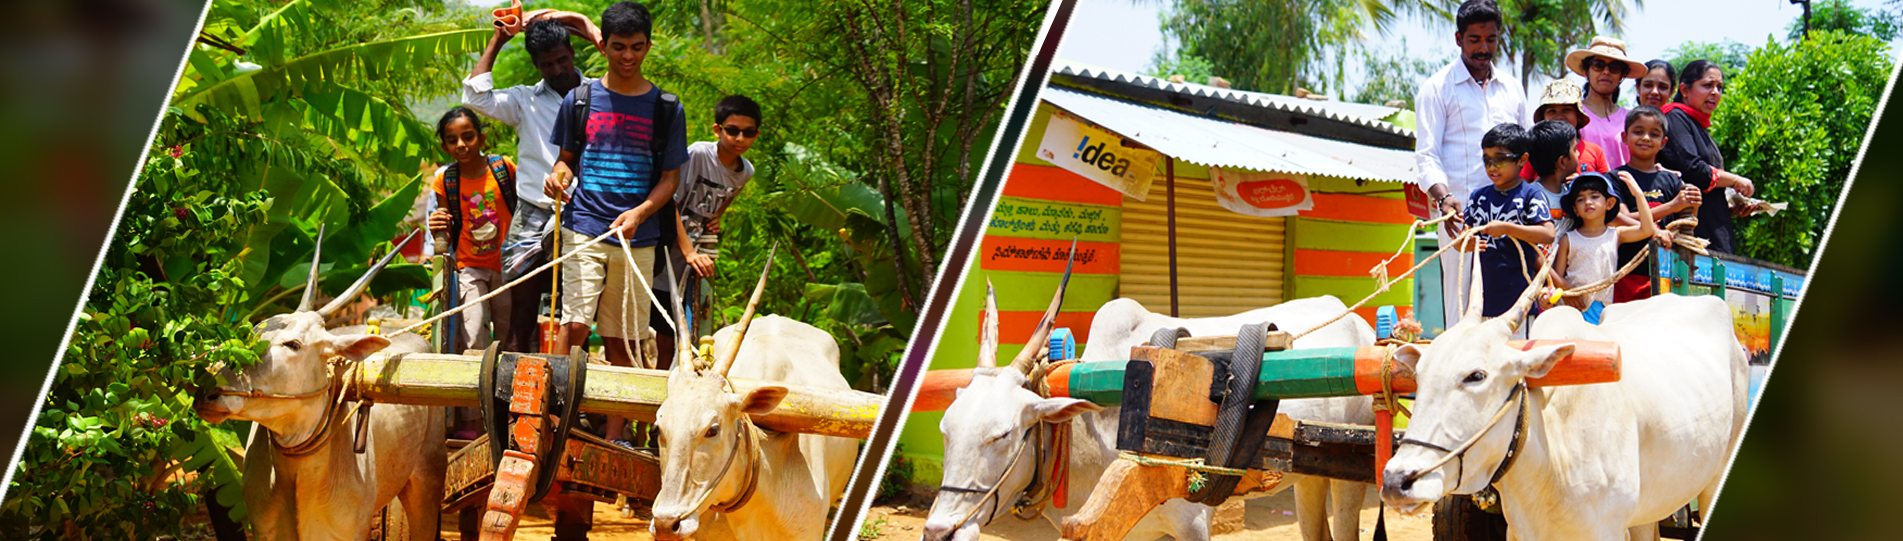 Bullock Cart Ride near Bangalore